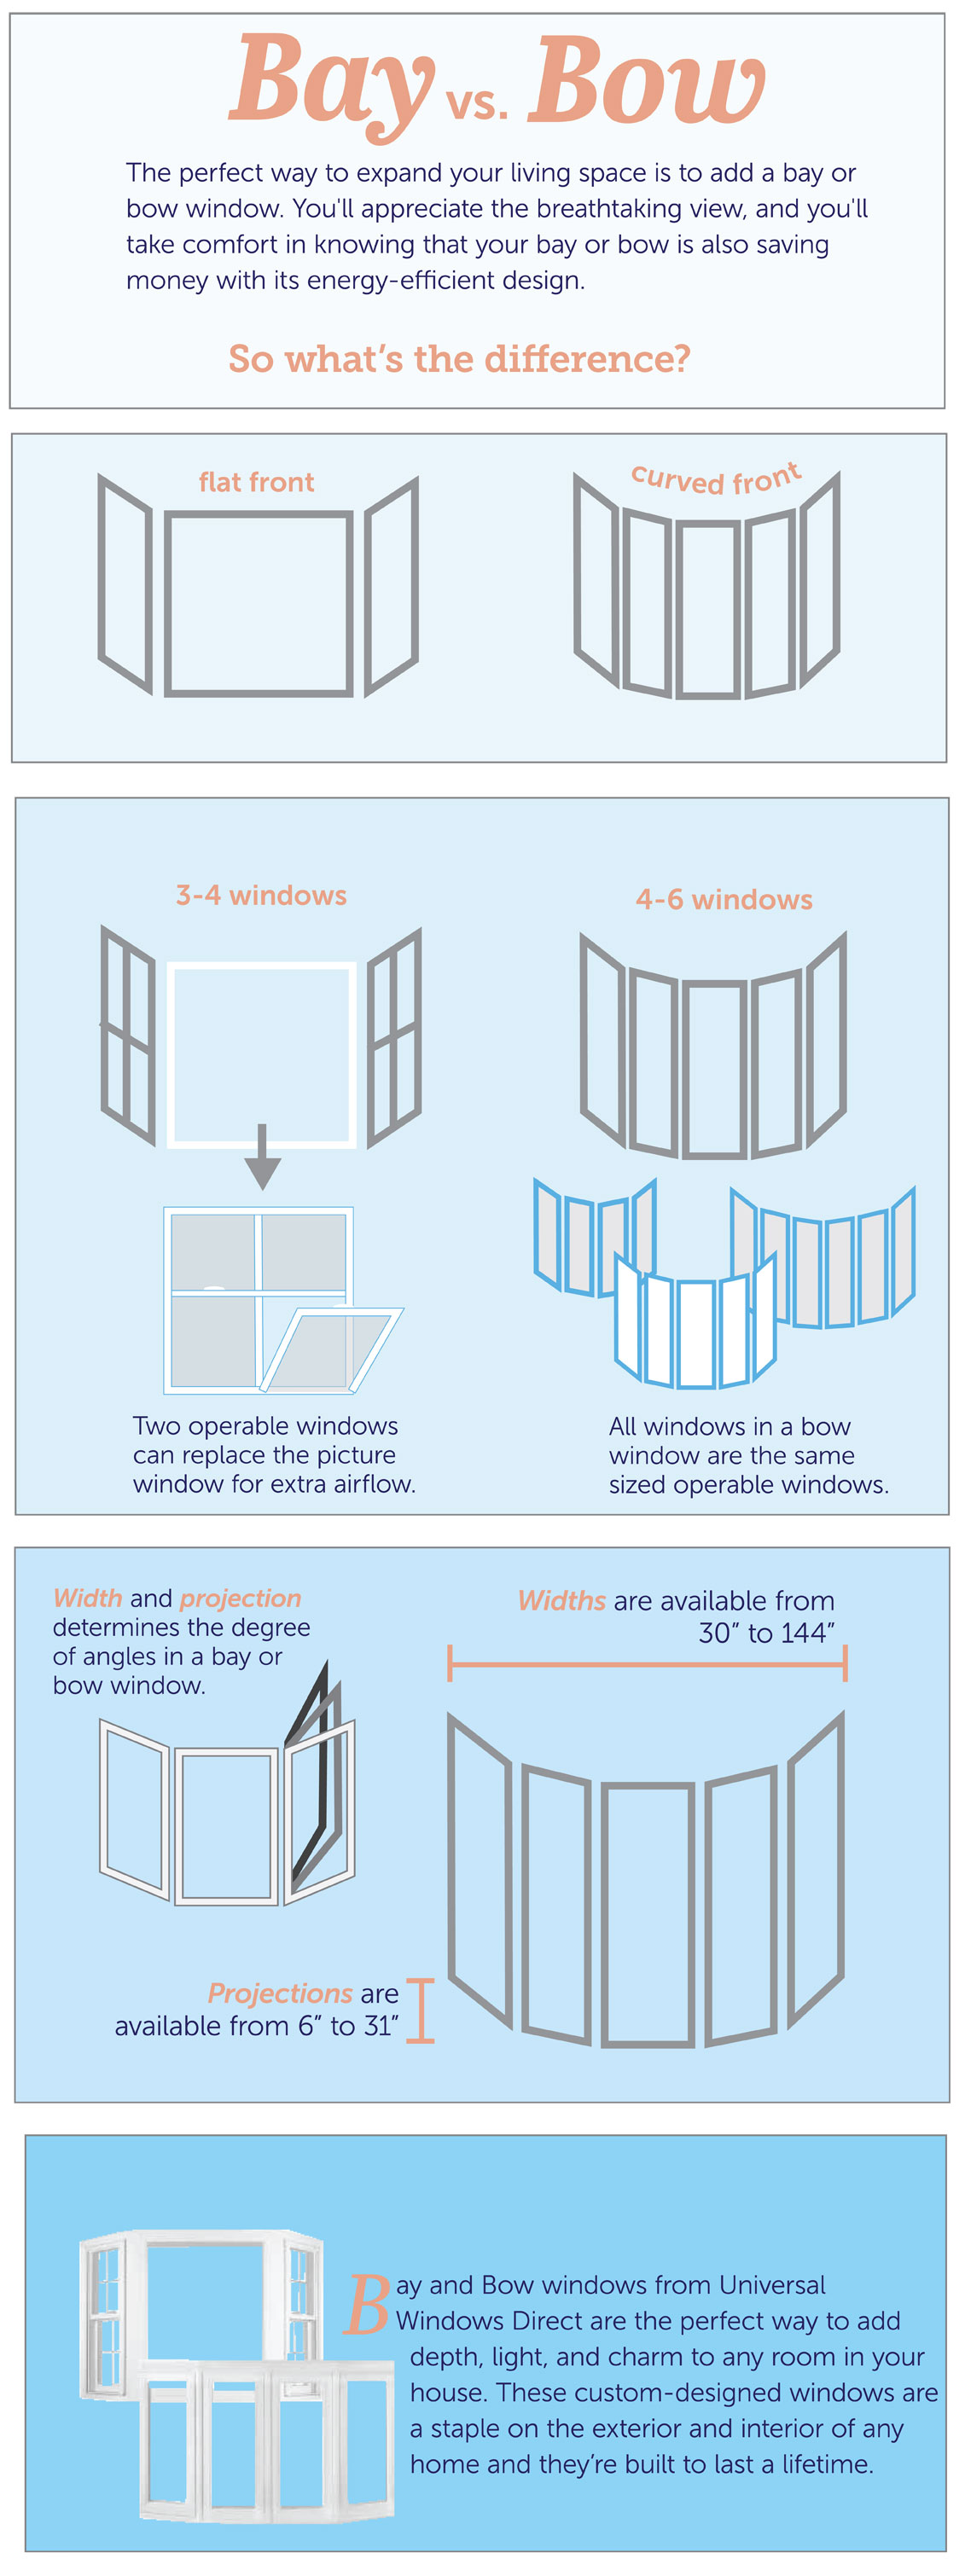 The differences between bay windows and bow windows.